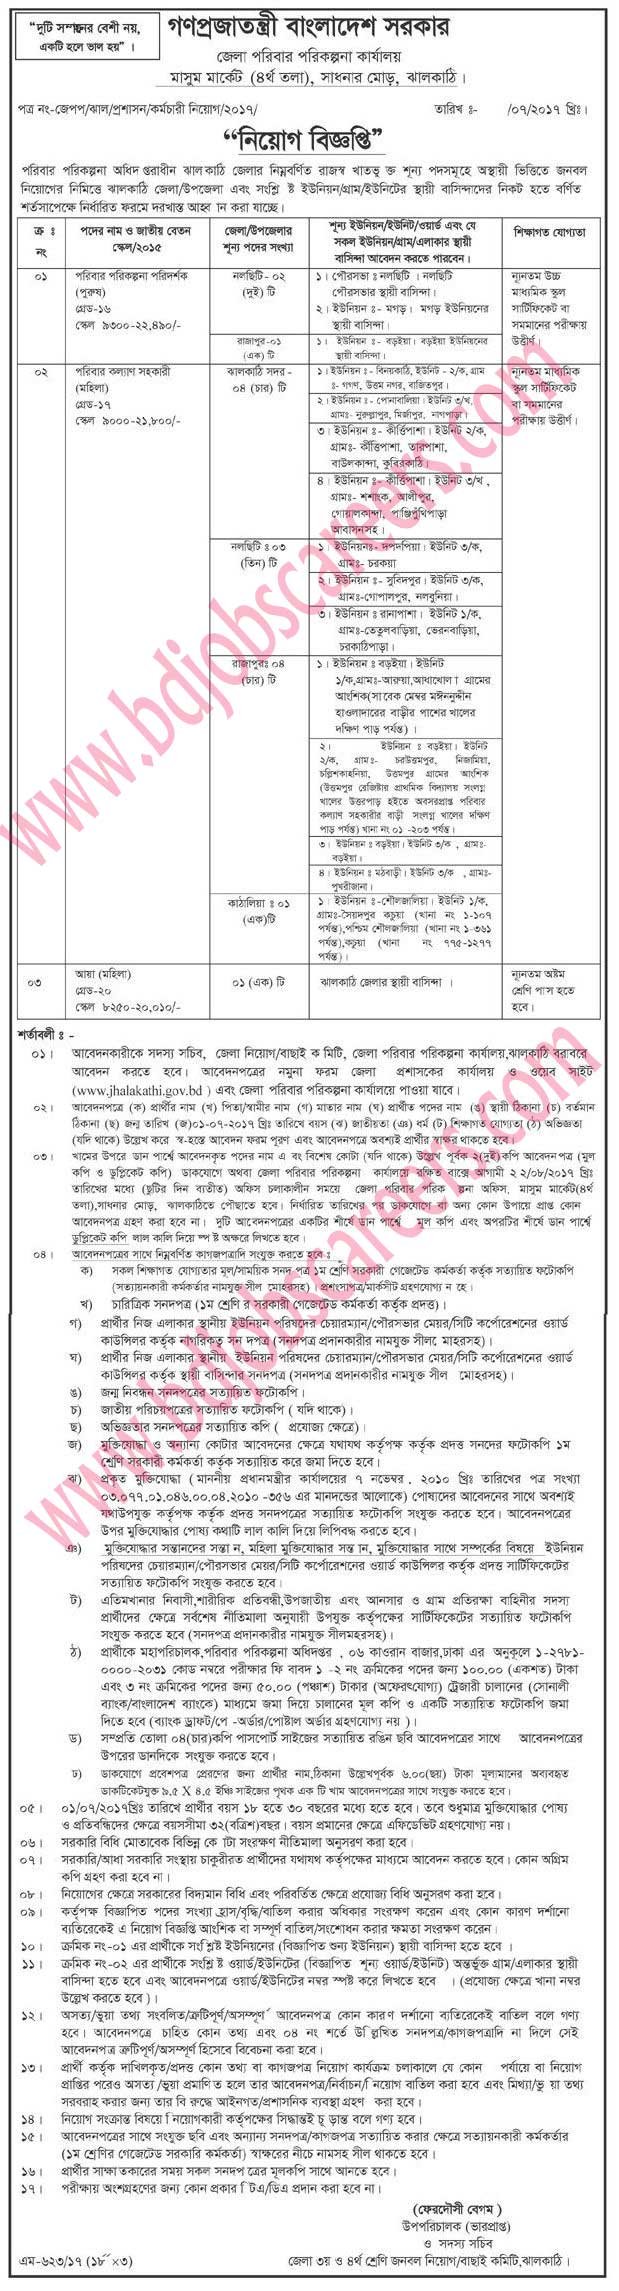 Jhalakathi District Family Planning Office Job Circular 2017